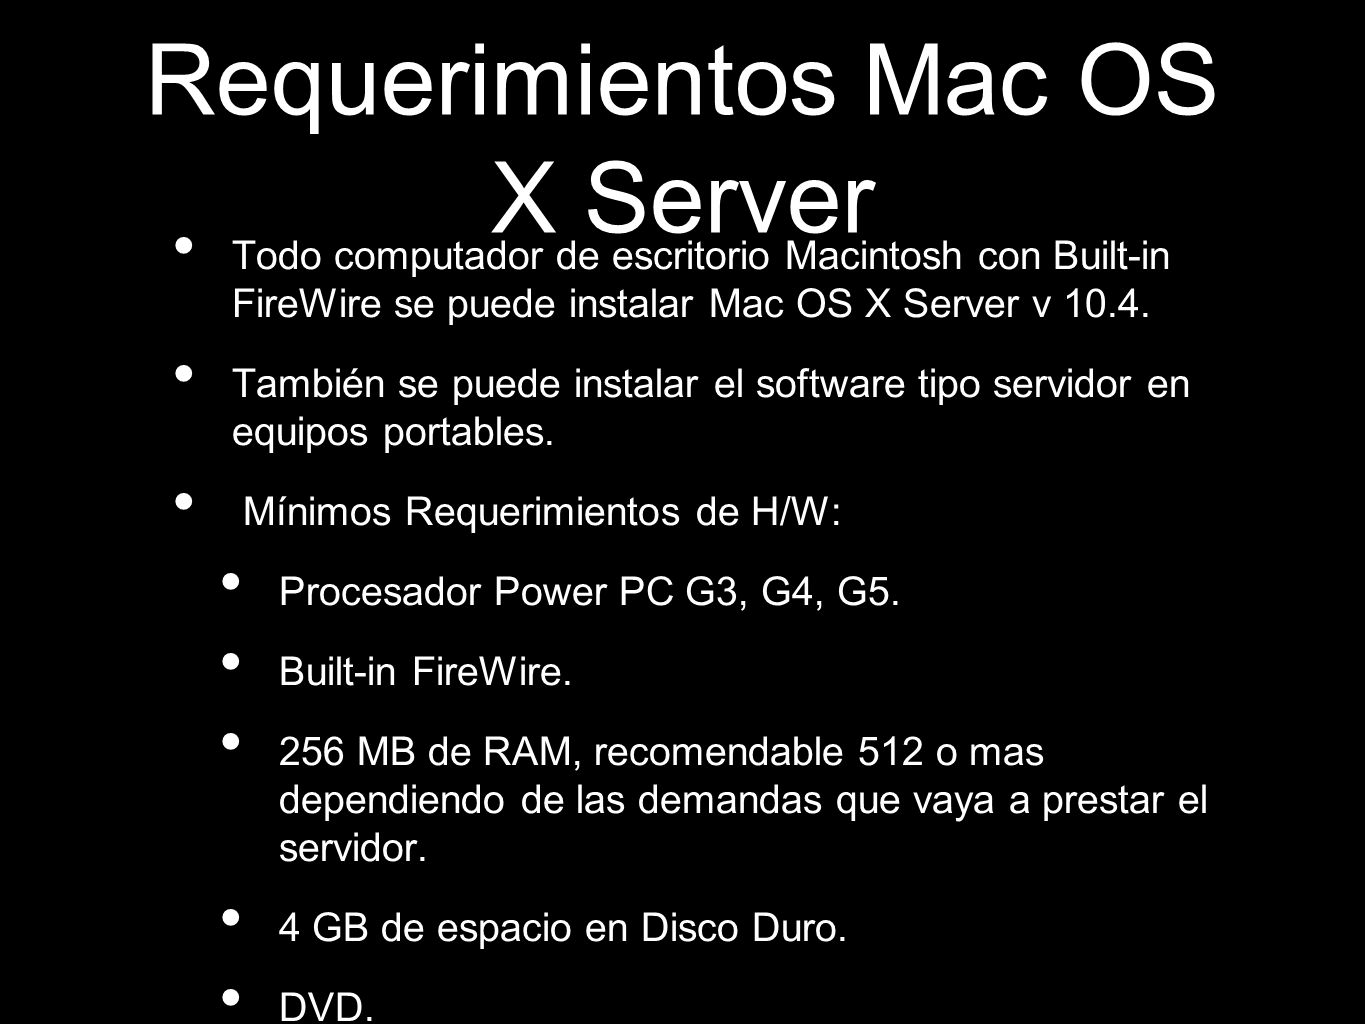 Requerimientos Mac OS X Server